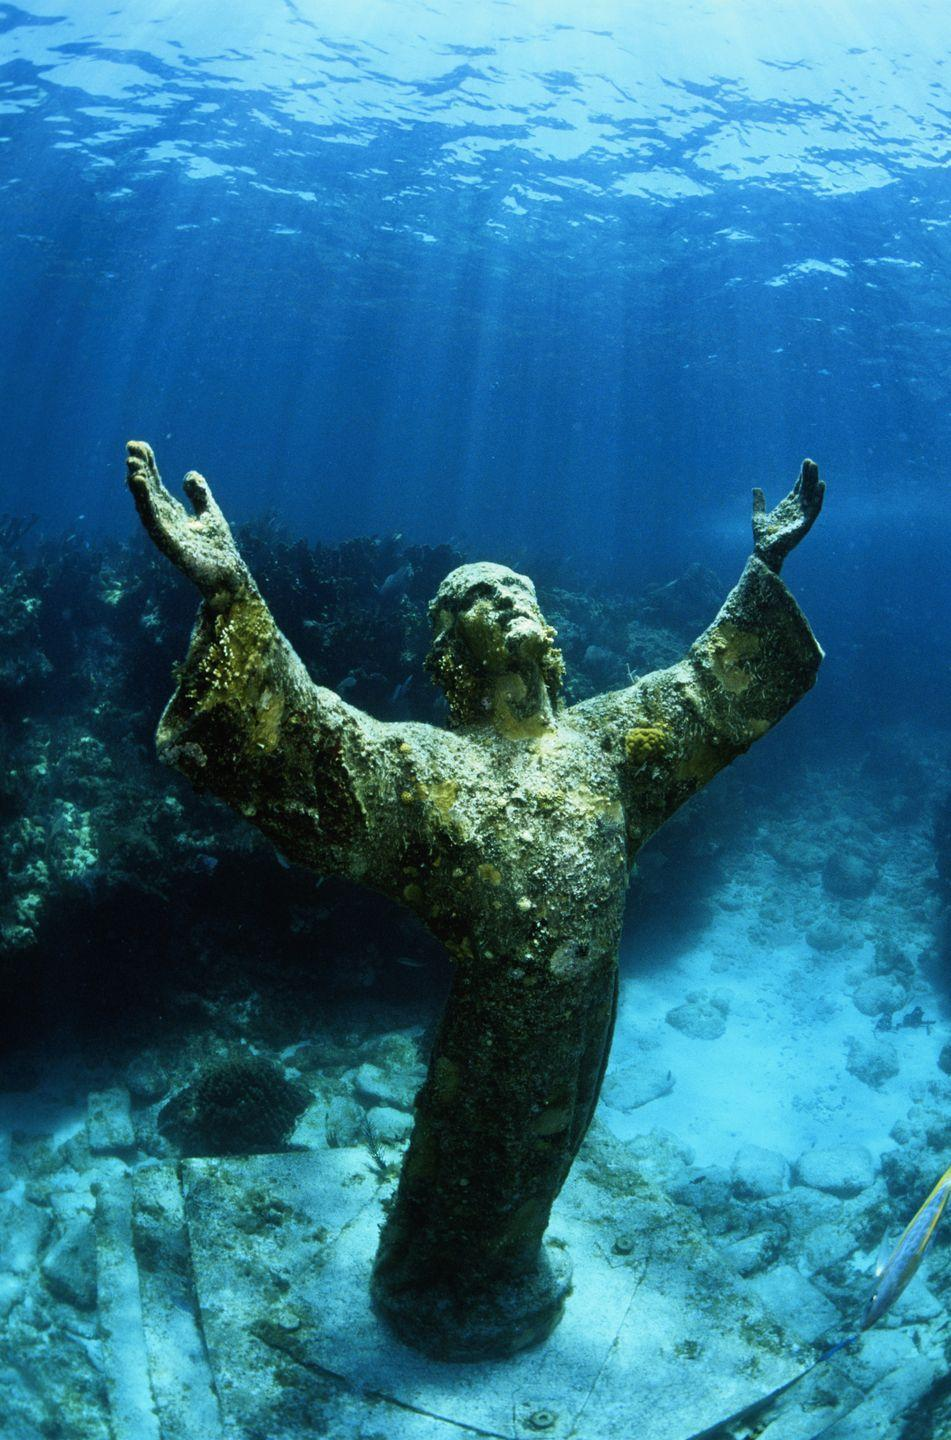 """<p>The 9-foot tall bronze statue was submerged underwater, off the coast of Key West, Florida, on August 25, 1965. It's the <a href=""""https://www.atlasobscura.com/places/christ-of-the-abyss-florida"""" rel=""""nofollow noopener"""" target=""""_blank"""" data-ylk=""""slk:third sculpture"""" class=""""link rapid-noclick-resp"""">third sculpture</a> cast from an original mold that created two other statues placed in the Mediterranean Sea (1954) and the Caribbean Sea (1961).</p>"""